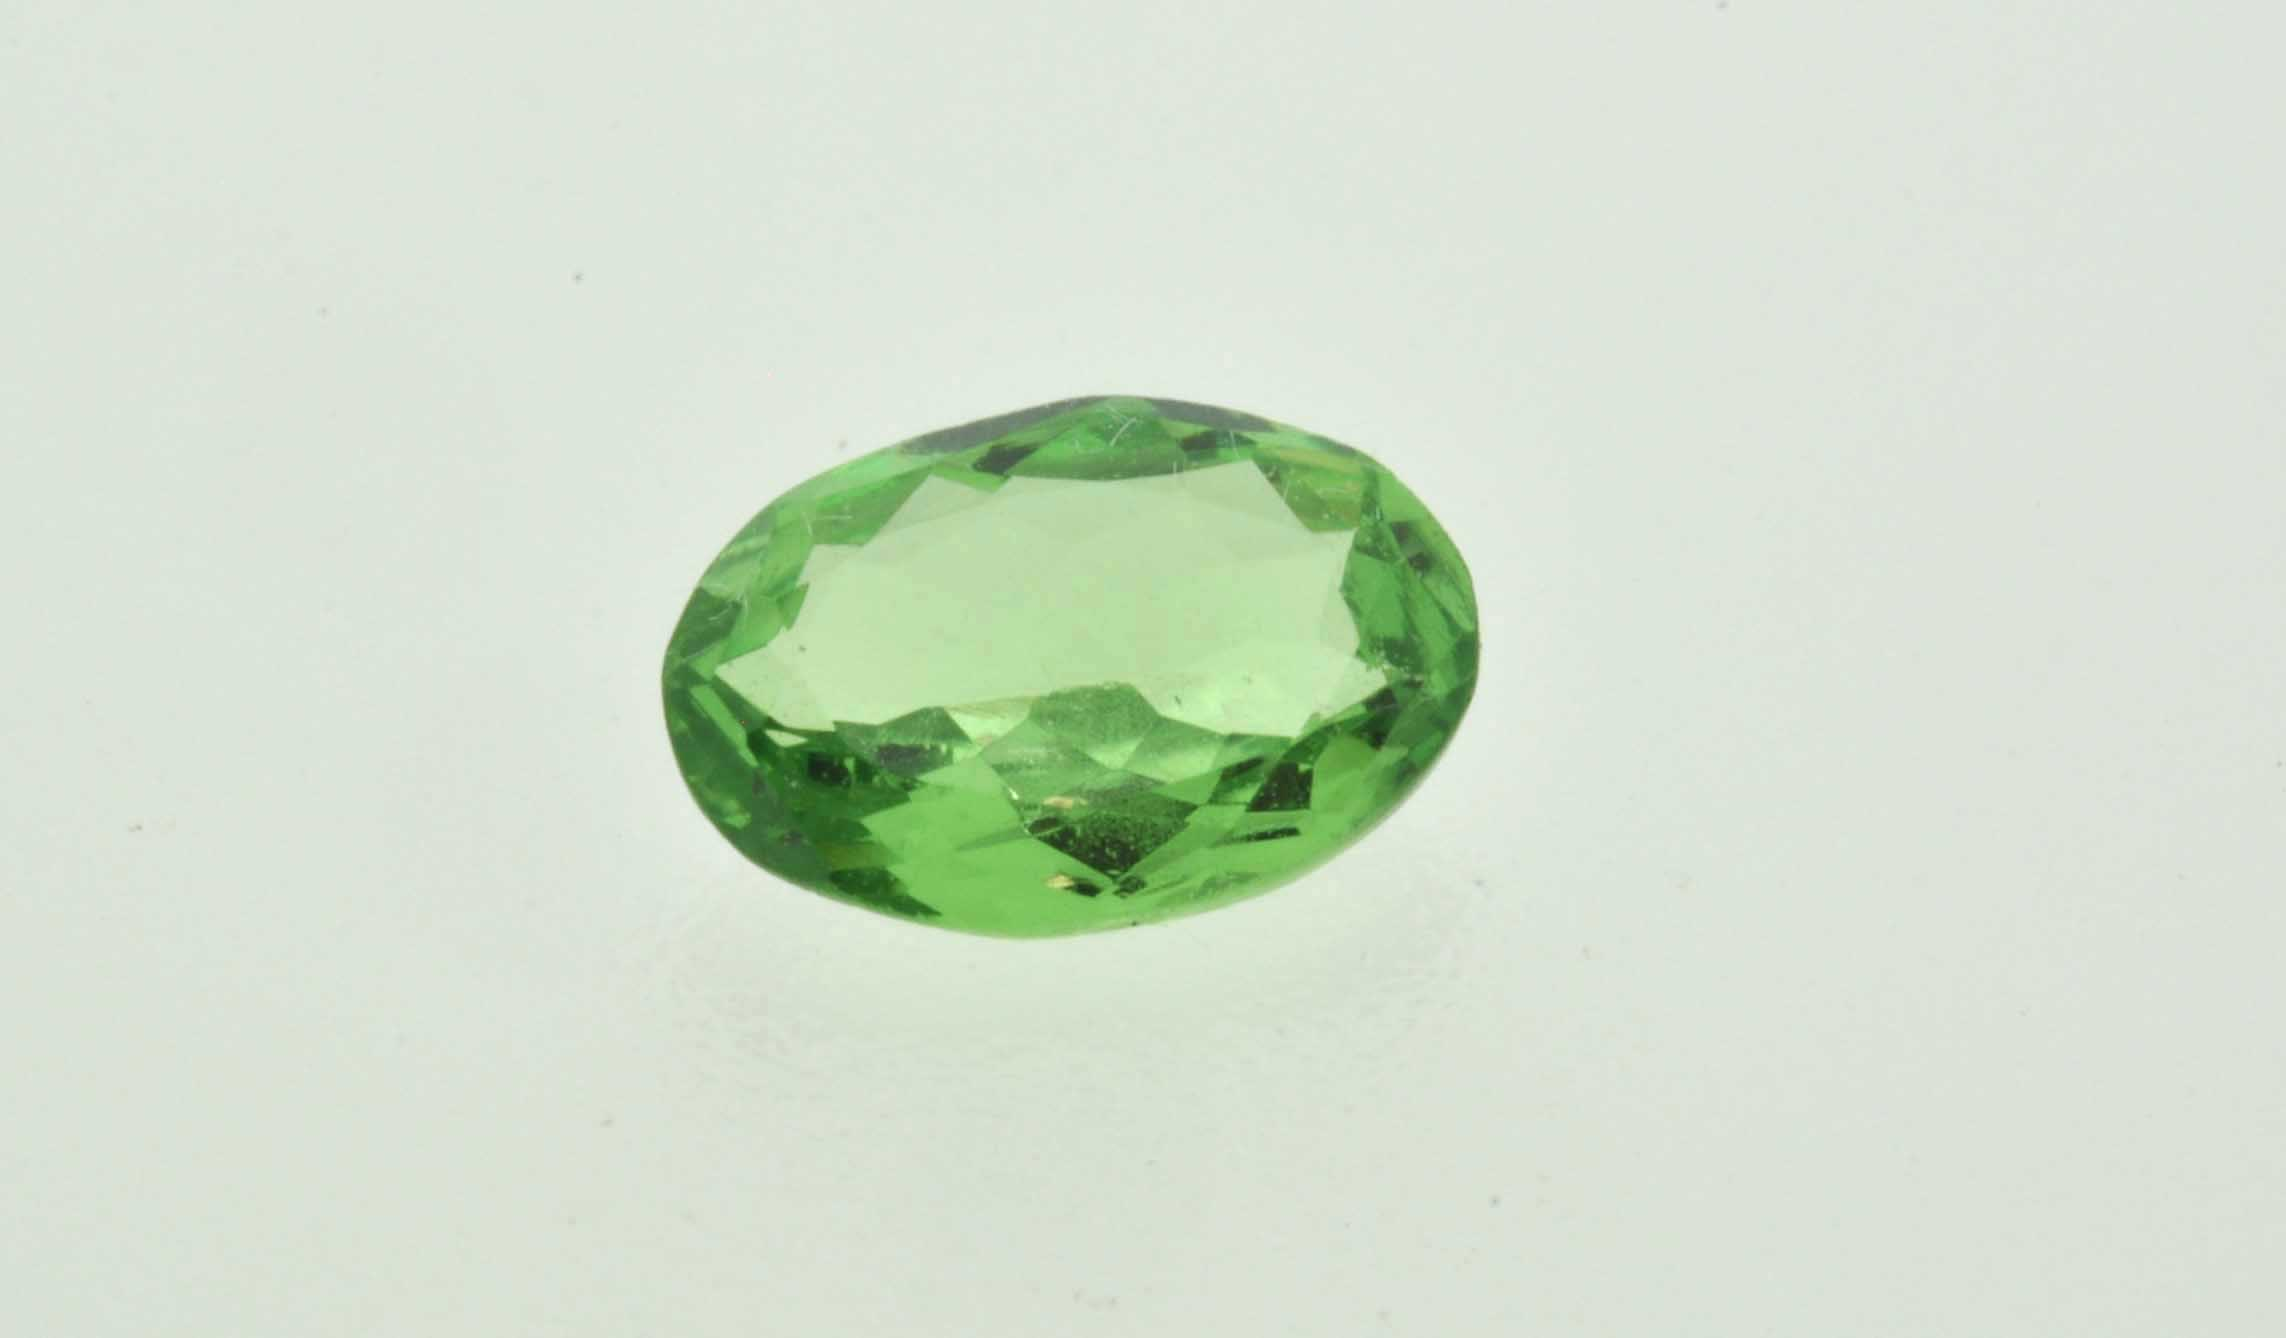 of cts en gemstone jaipur gem one stop picture diamond cut round tsavorite